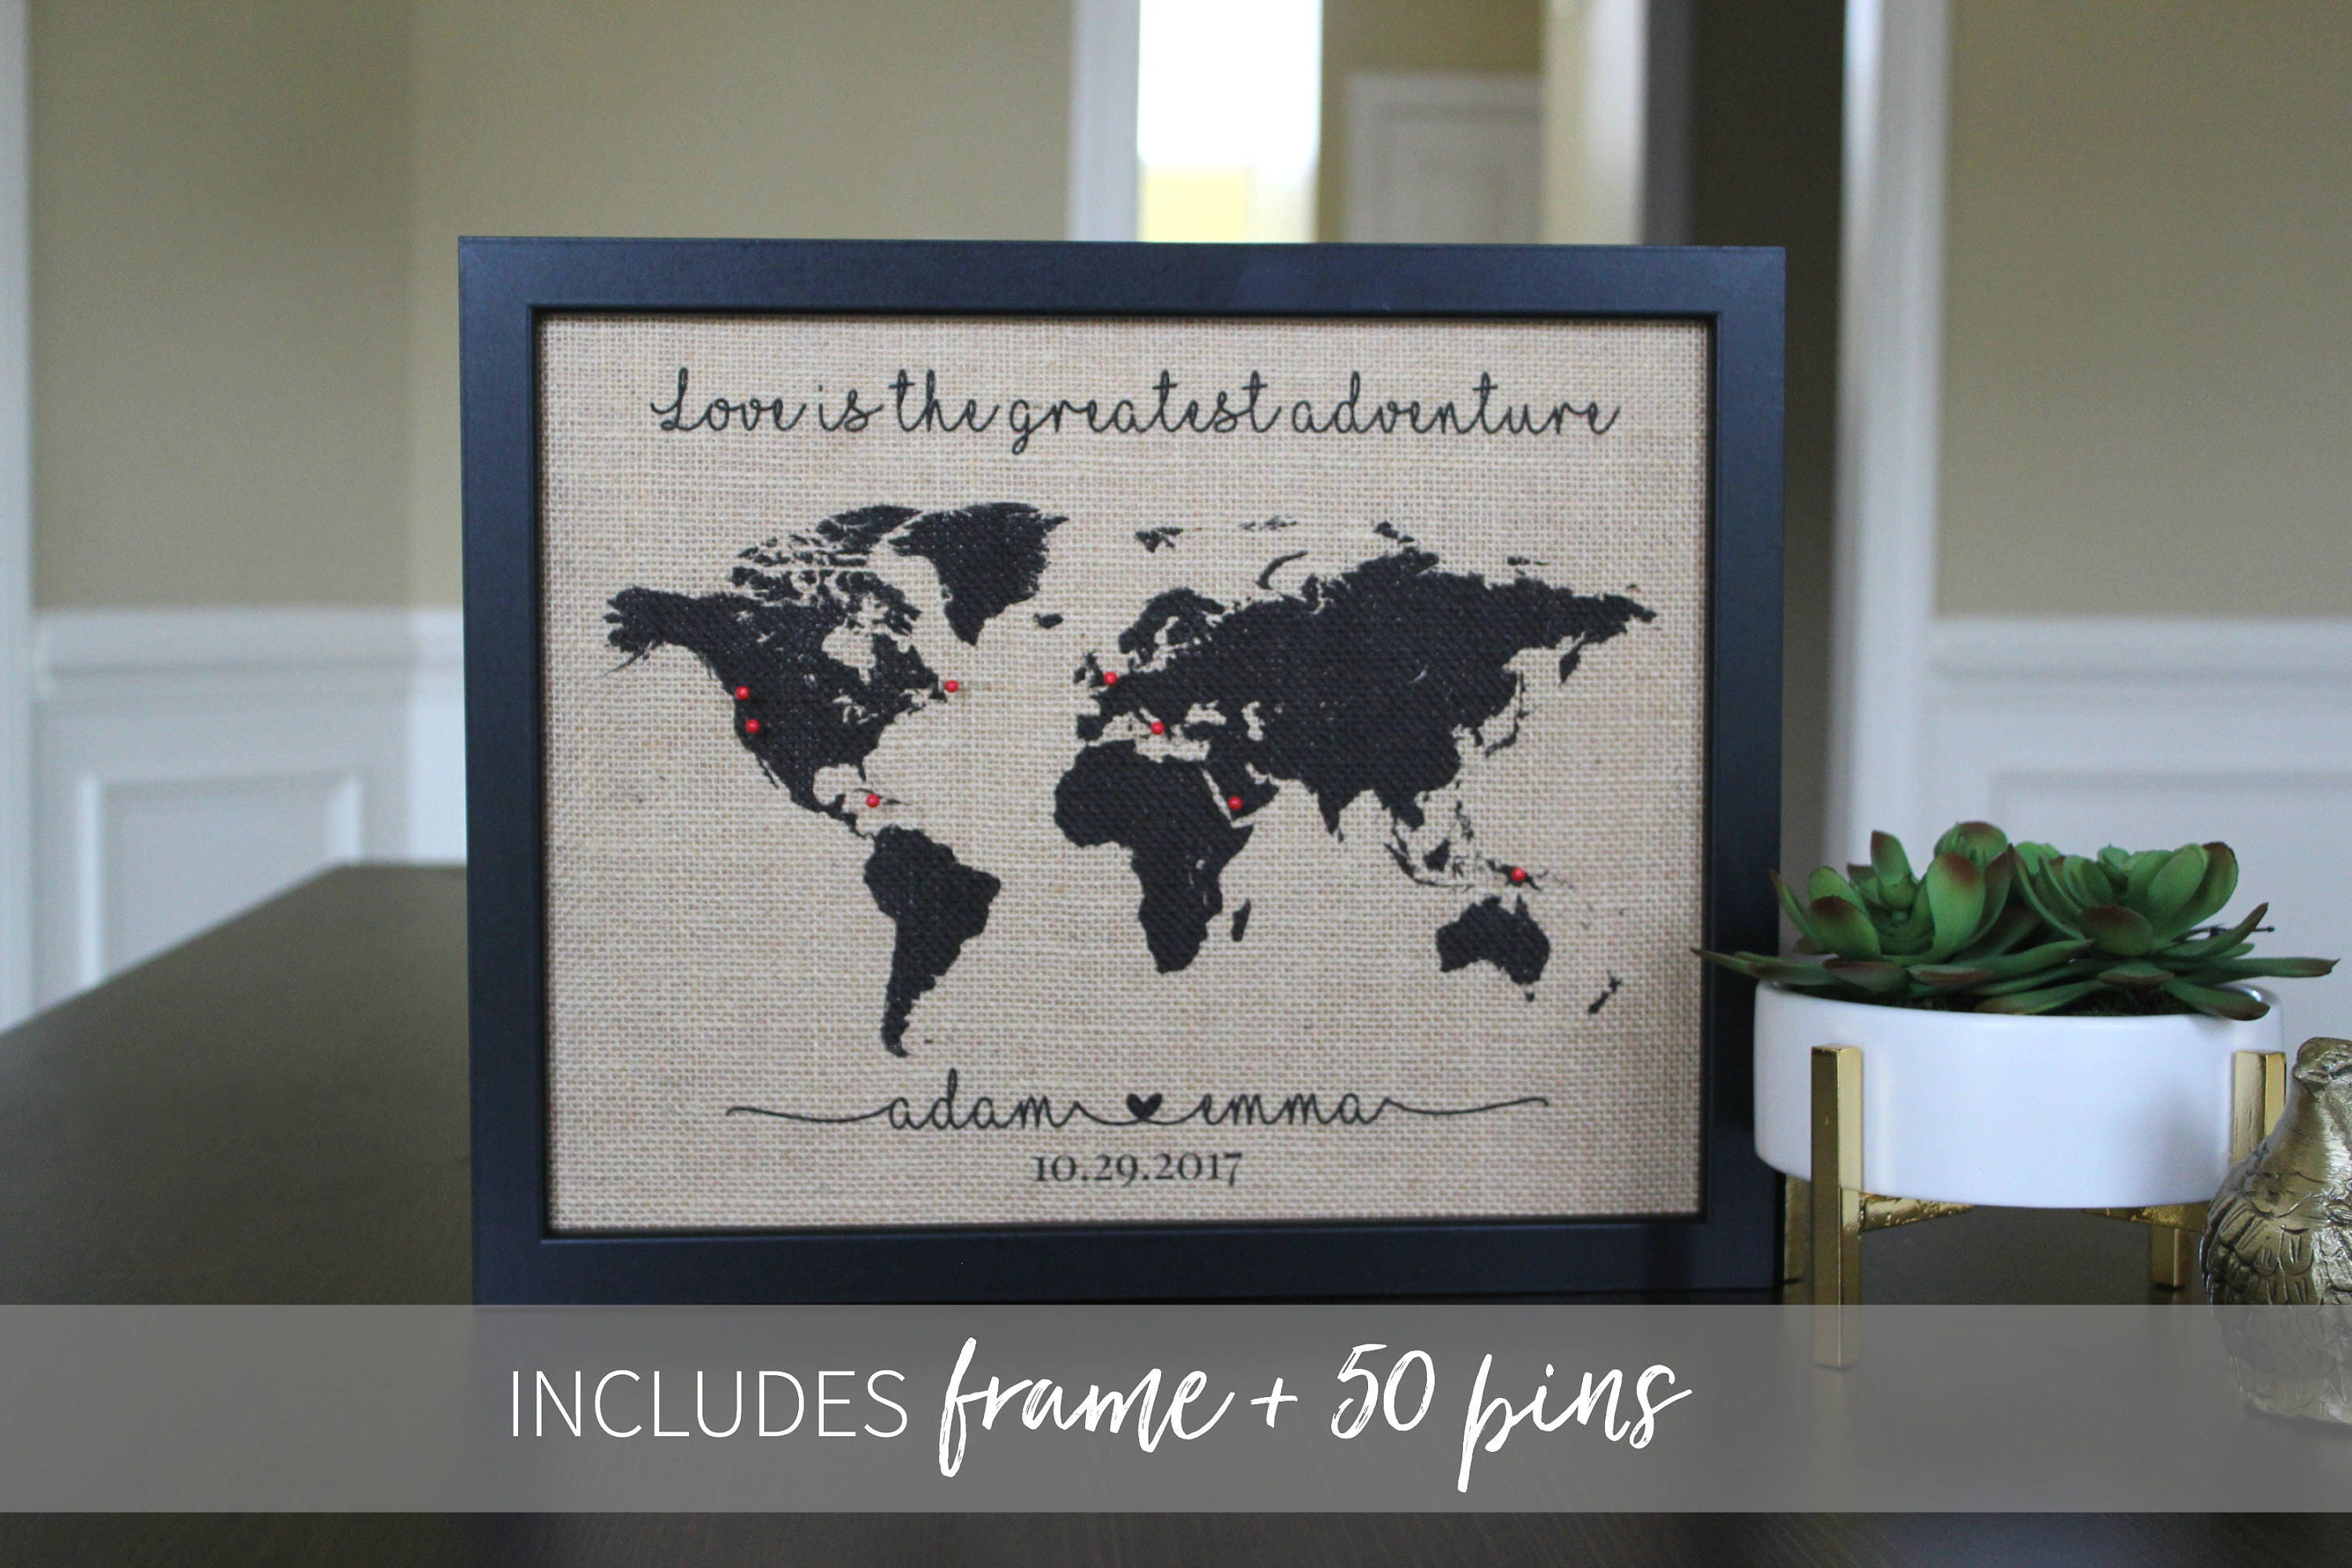 Framed push pin travel map travel gift anniversary gift framed push pin travel map travel gift anniversary gift graduation gift wanderlust gumiabroncs Choice Image